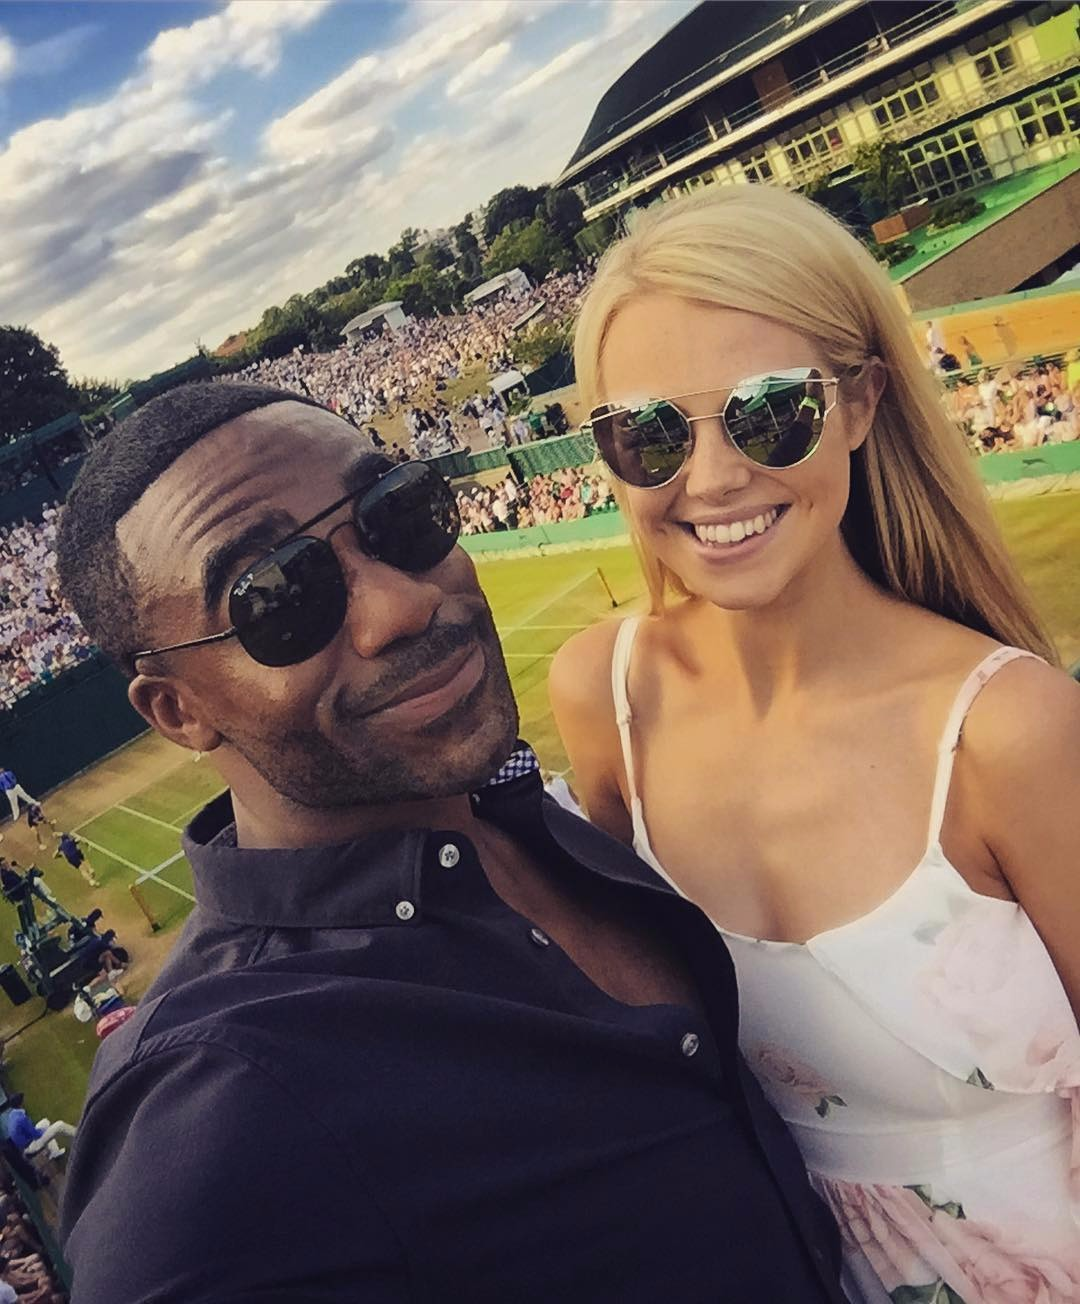 Ore Oduba is taking a selfie of him standing next to his wife, there'a tennis court behind them